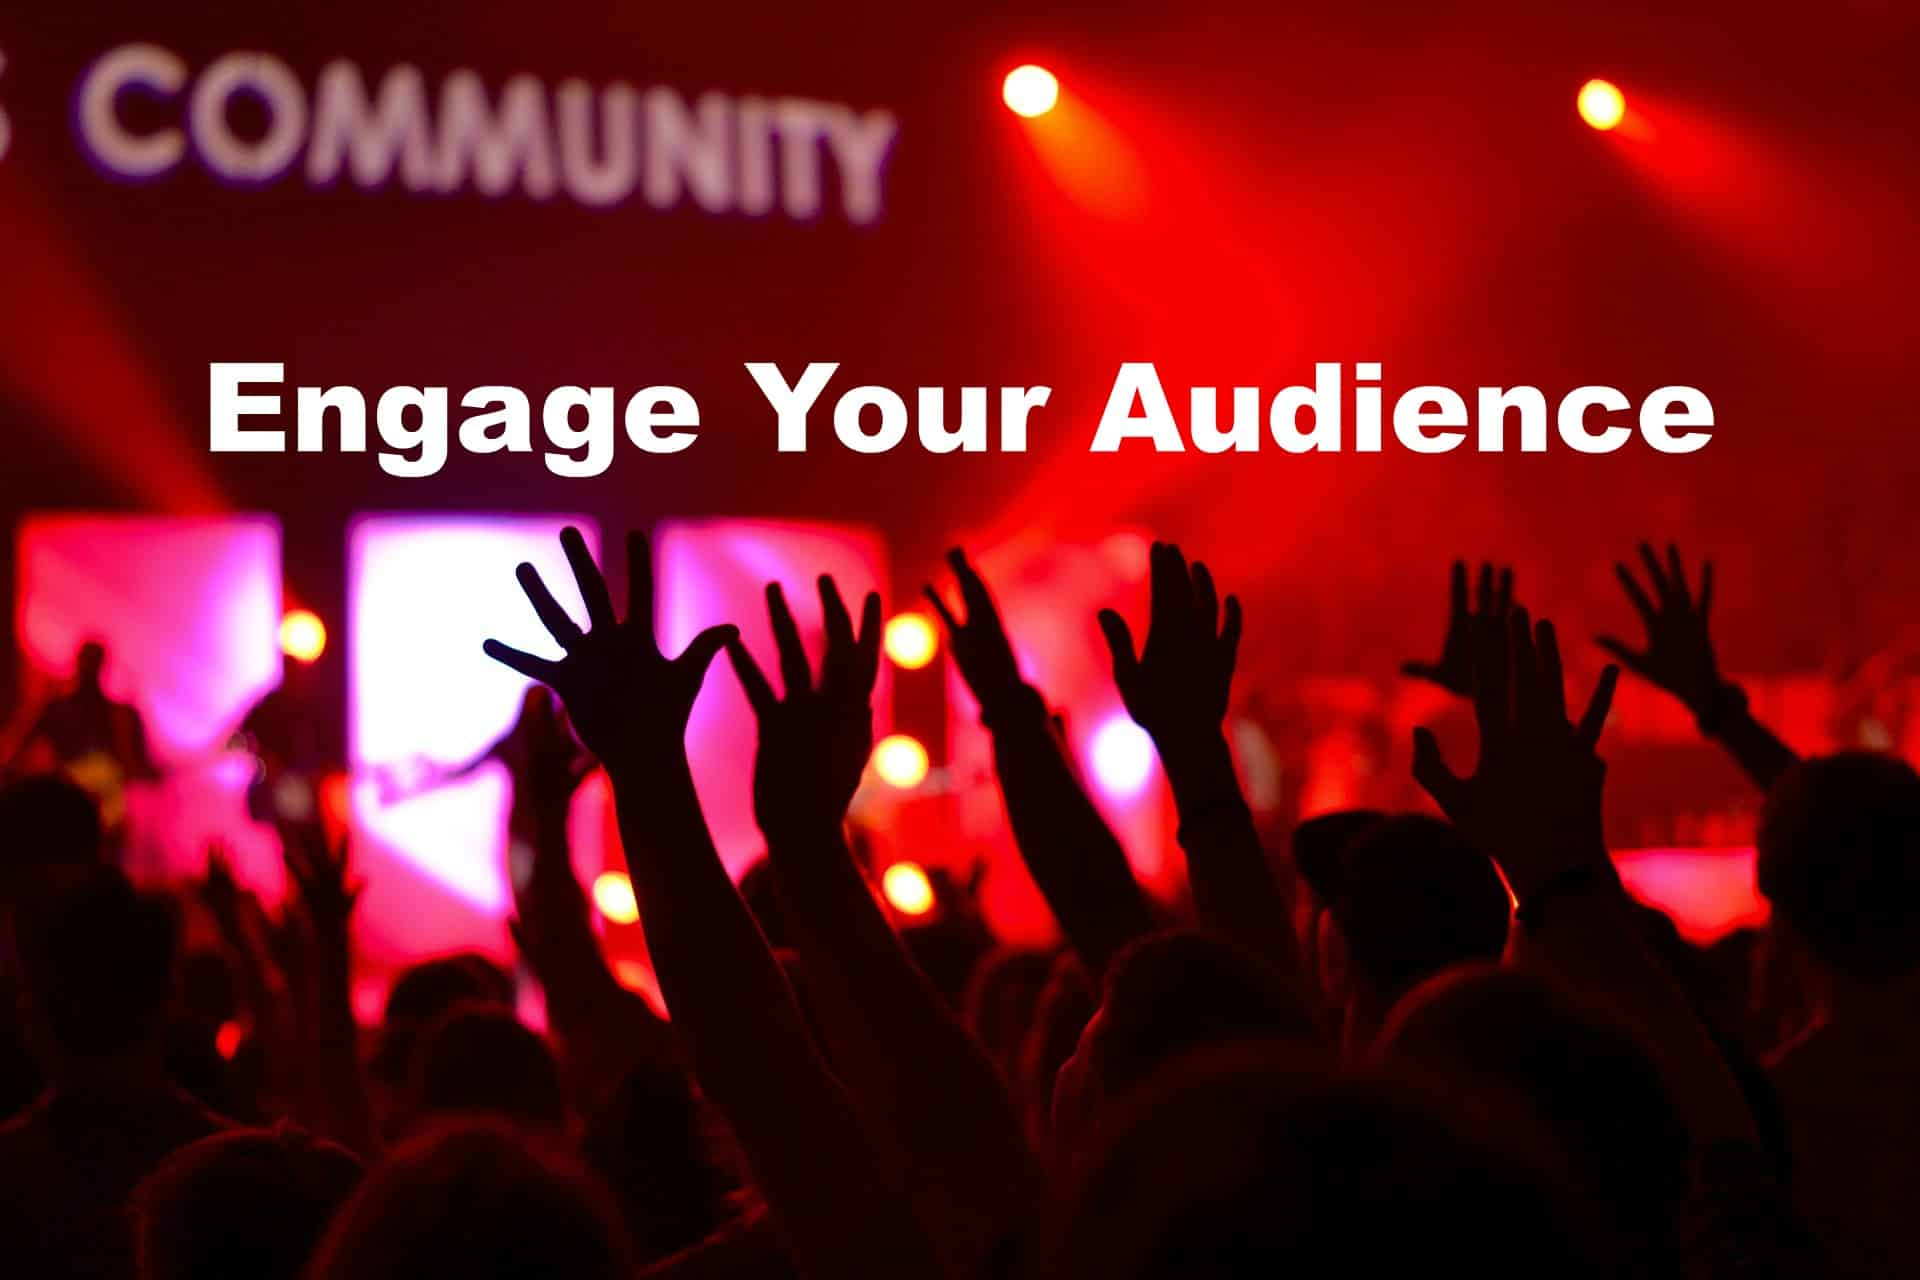 Grow your audience. Engage your audience